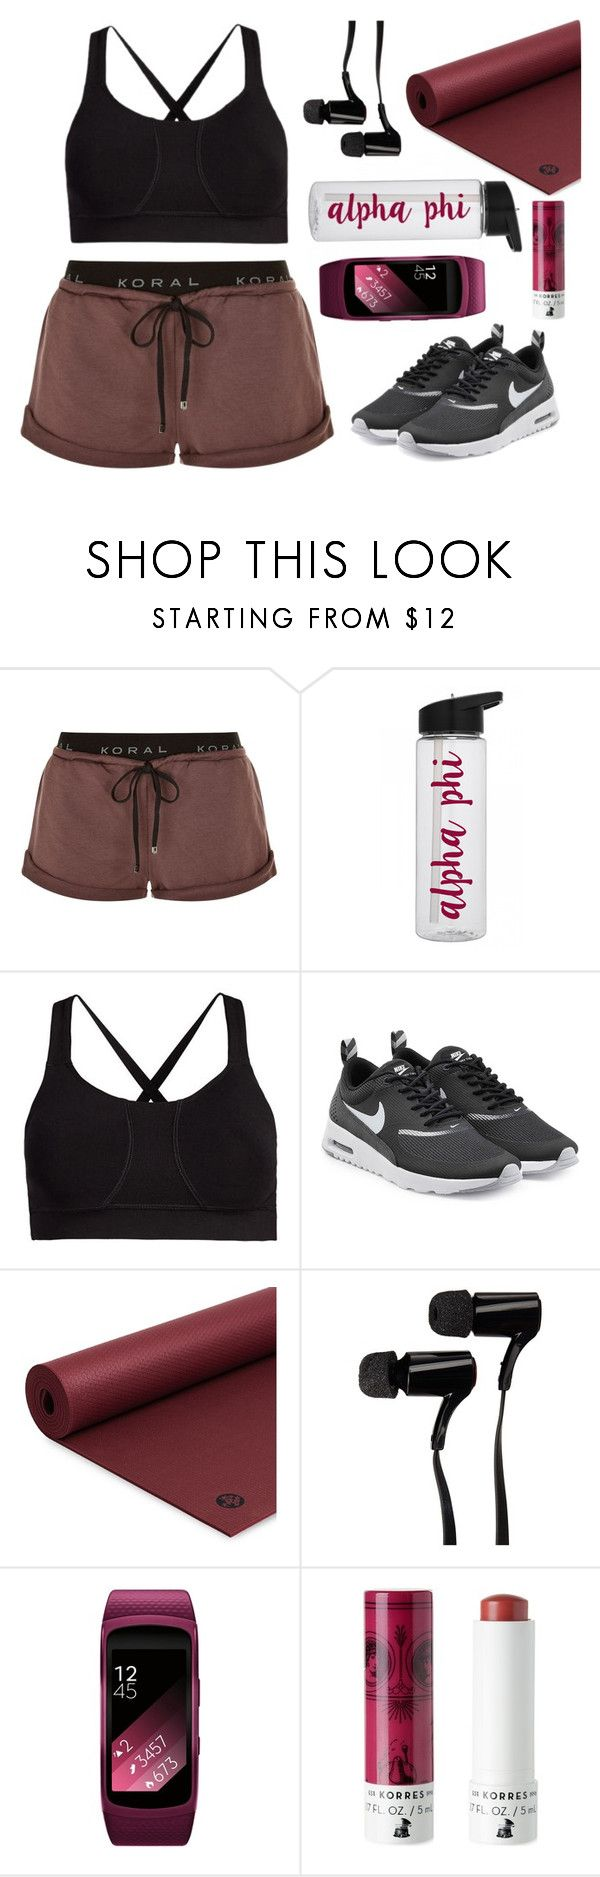 """Alpha Phi"" by lovelisa1997 ❤ liked on Polyvore featuring Koral, Tasc Performance, NIKE, Manduka, Outdoor Tech, Samsung, Korres, gym, gymessentials and gymbeauty"